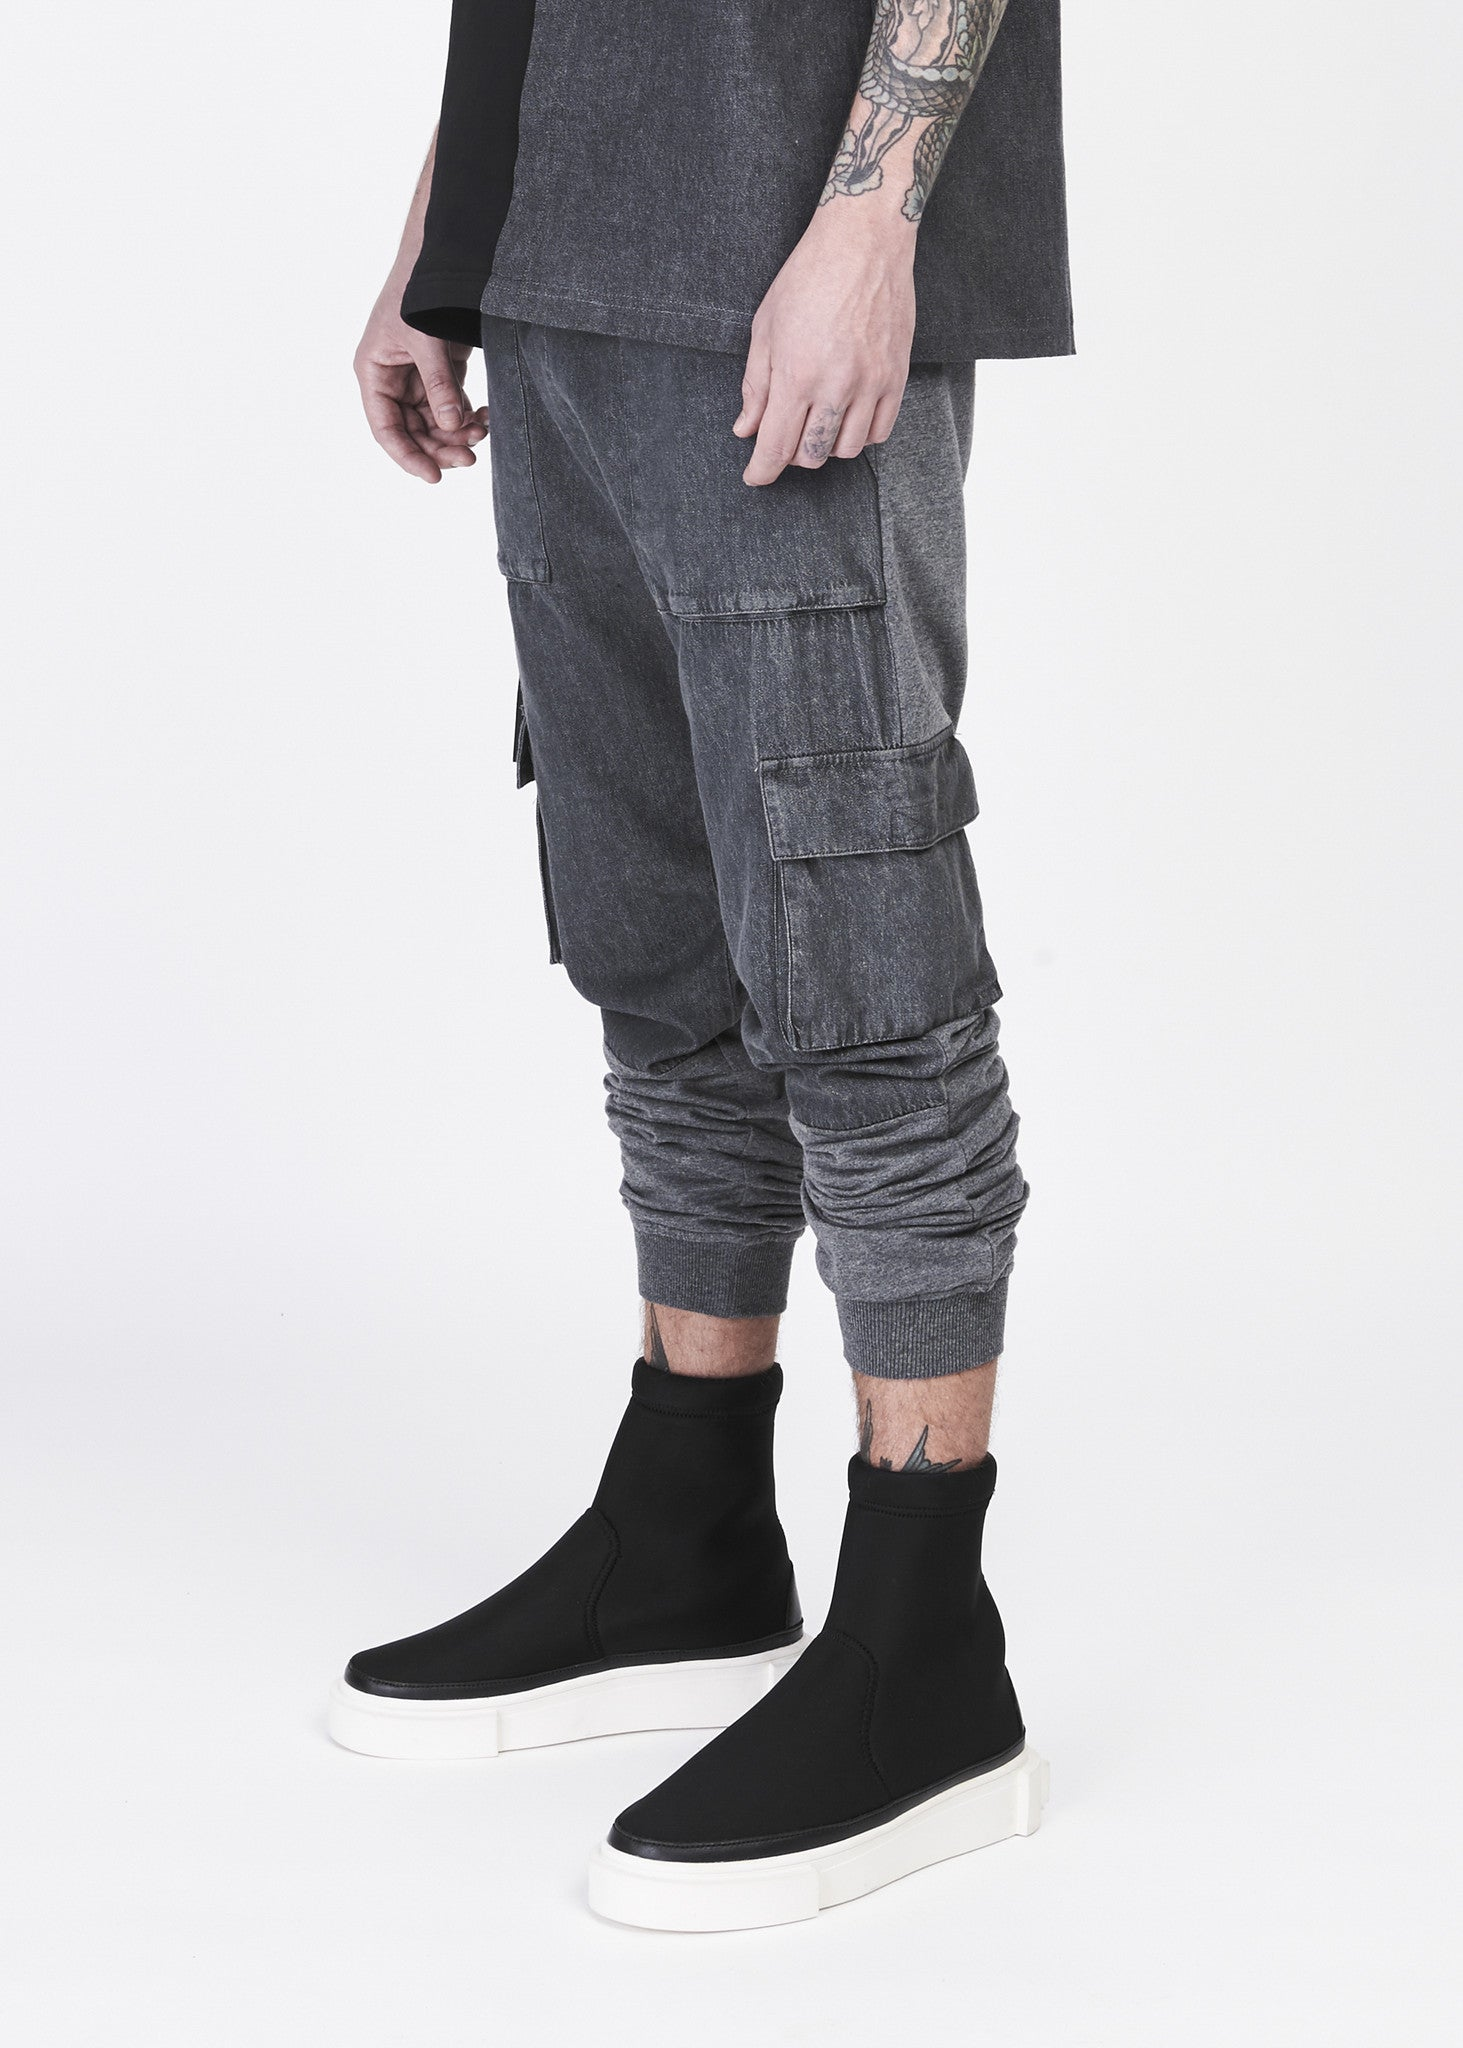 Soft Washed Denim Spliced Jogger Pants - CGNY